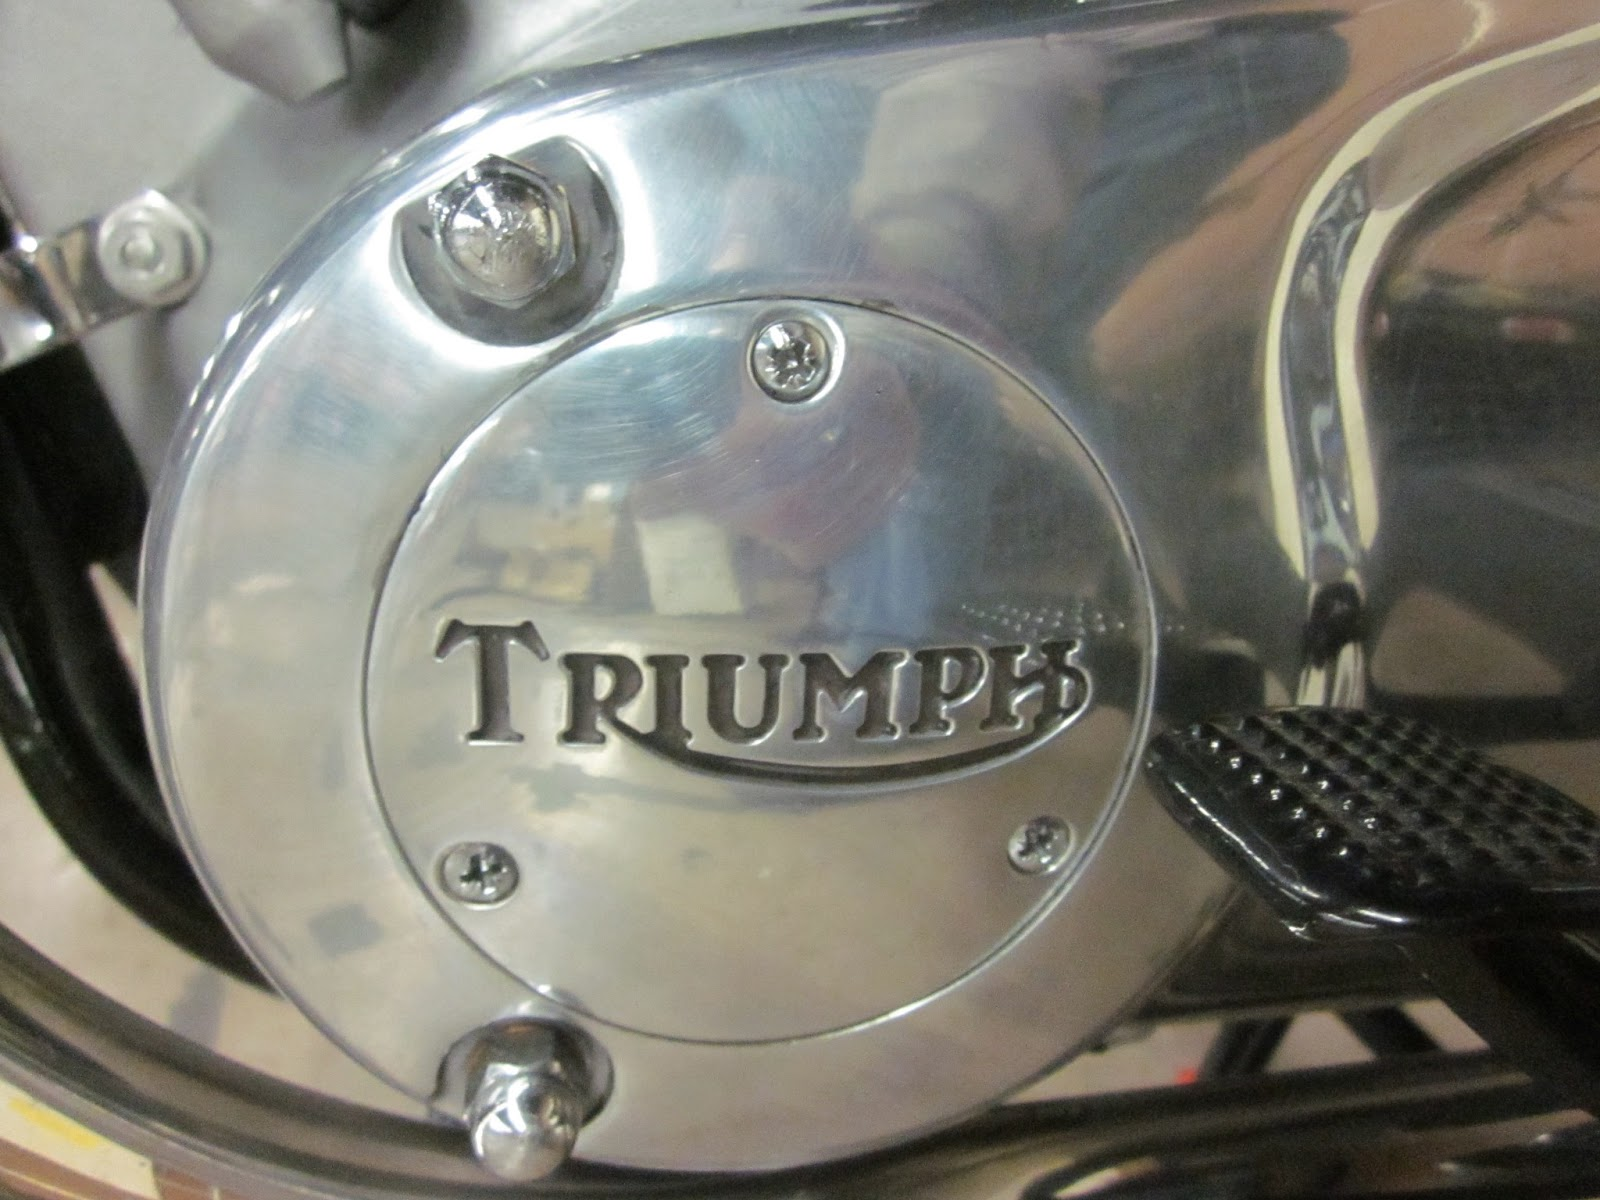 meet triumph singles How to join, what they do, where they meet, triumph dating, regalia, and much more.